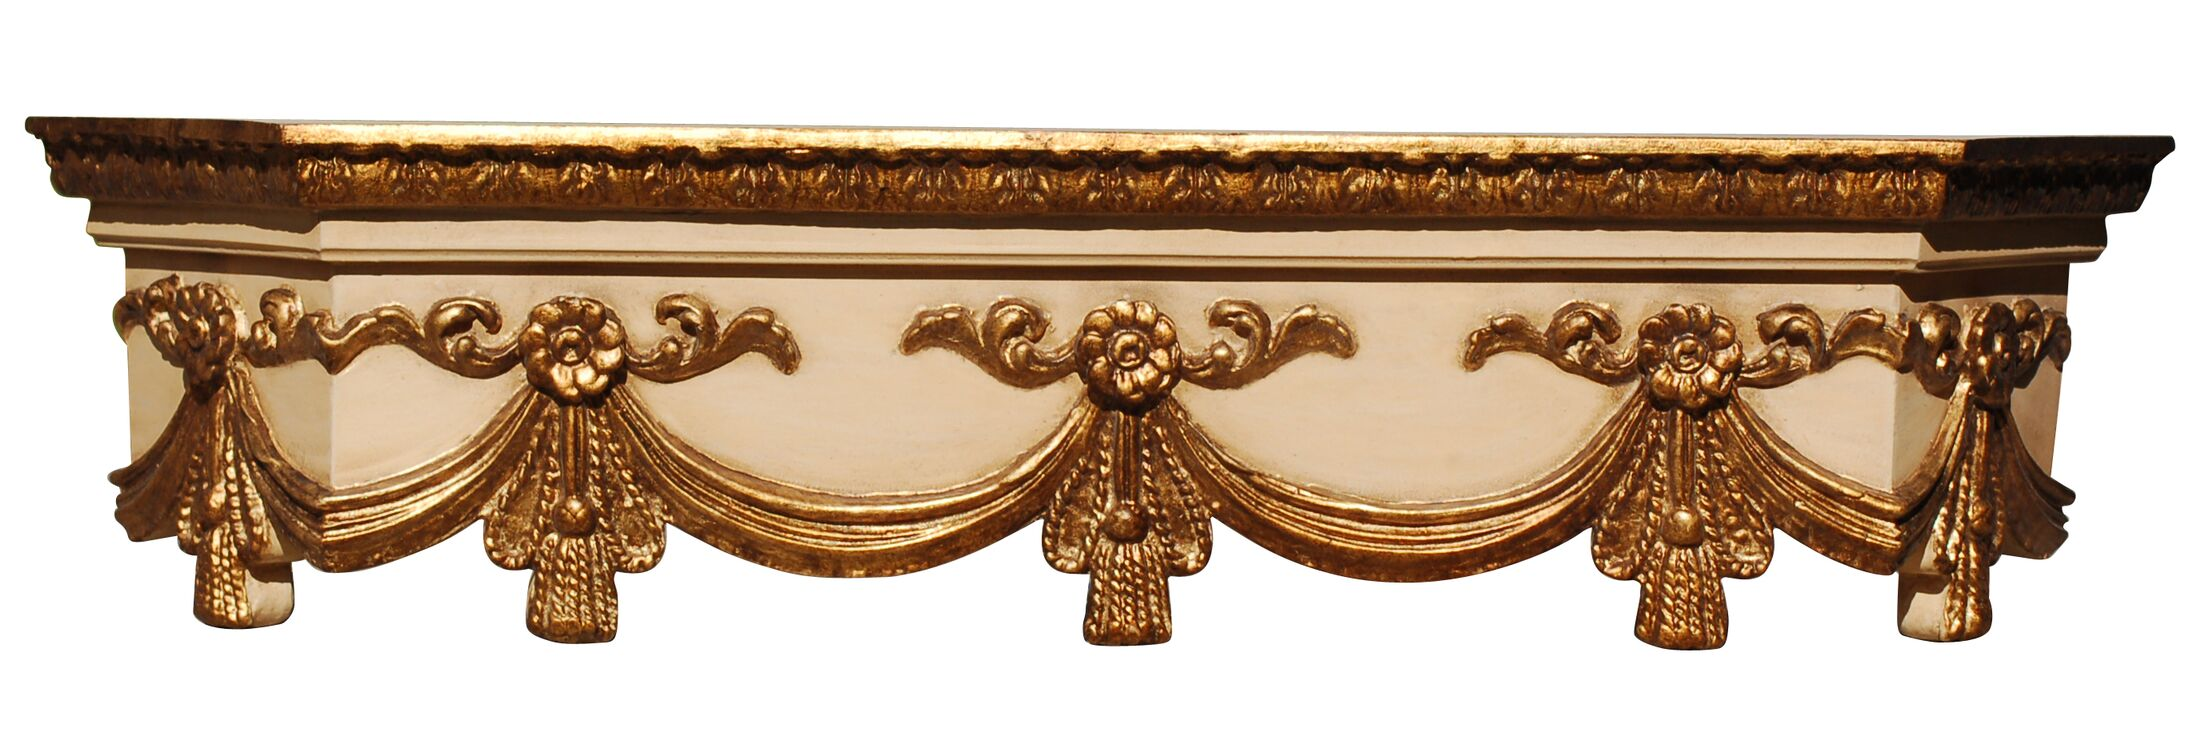 Large Swag Bed Crown Color: Ivory Gold